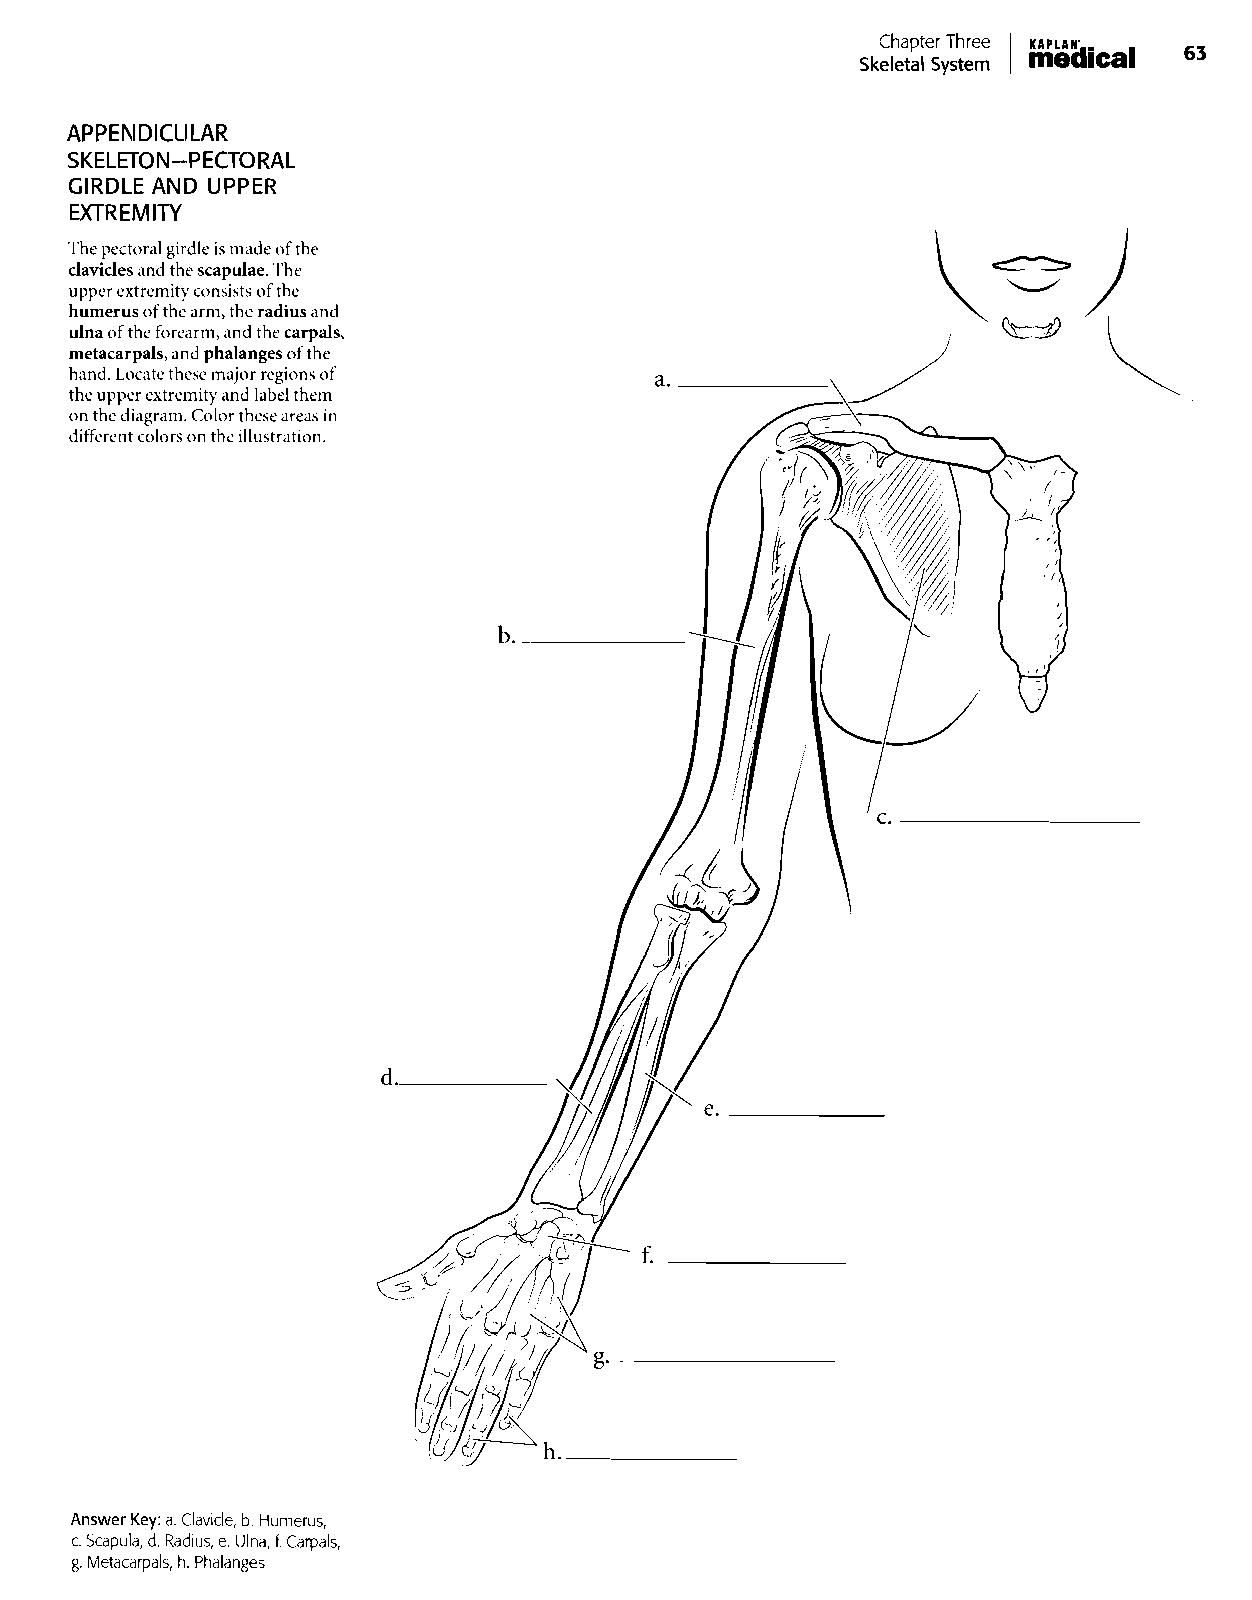 kaplan anatomy coloring book pdf boudli pinterest colour